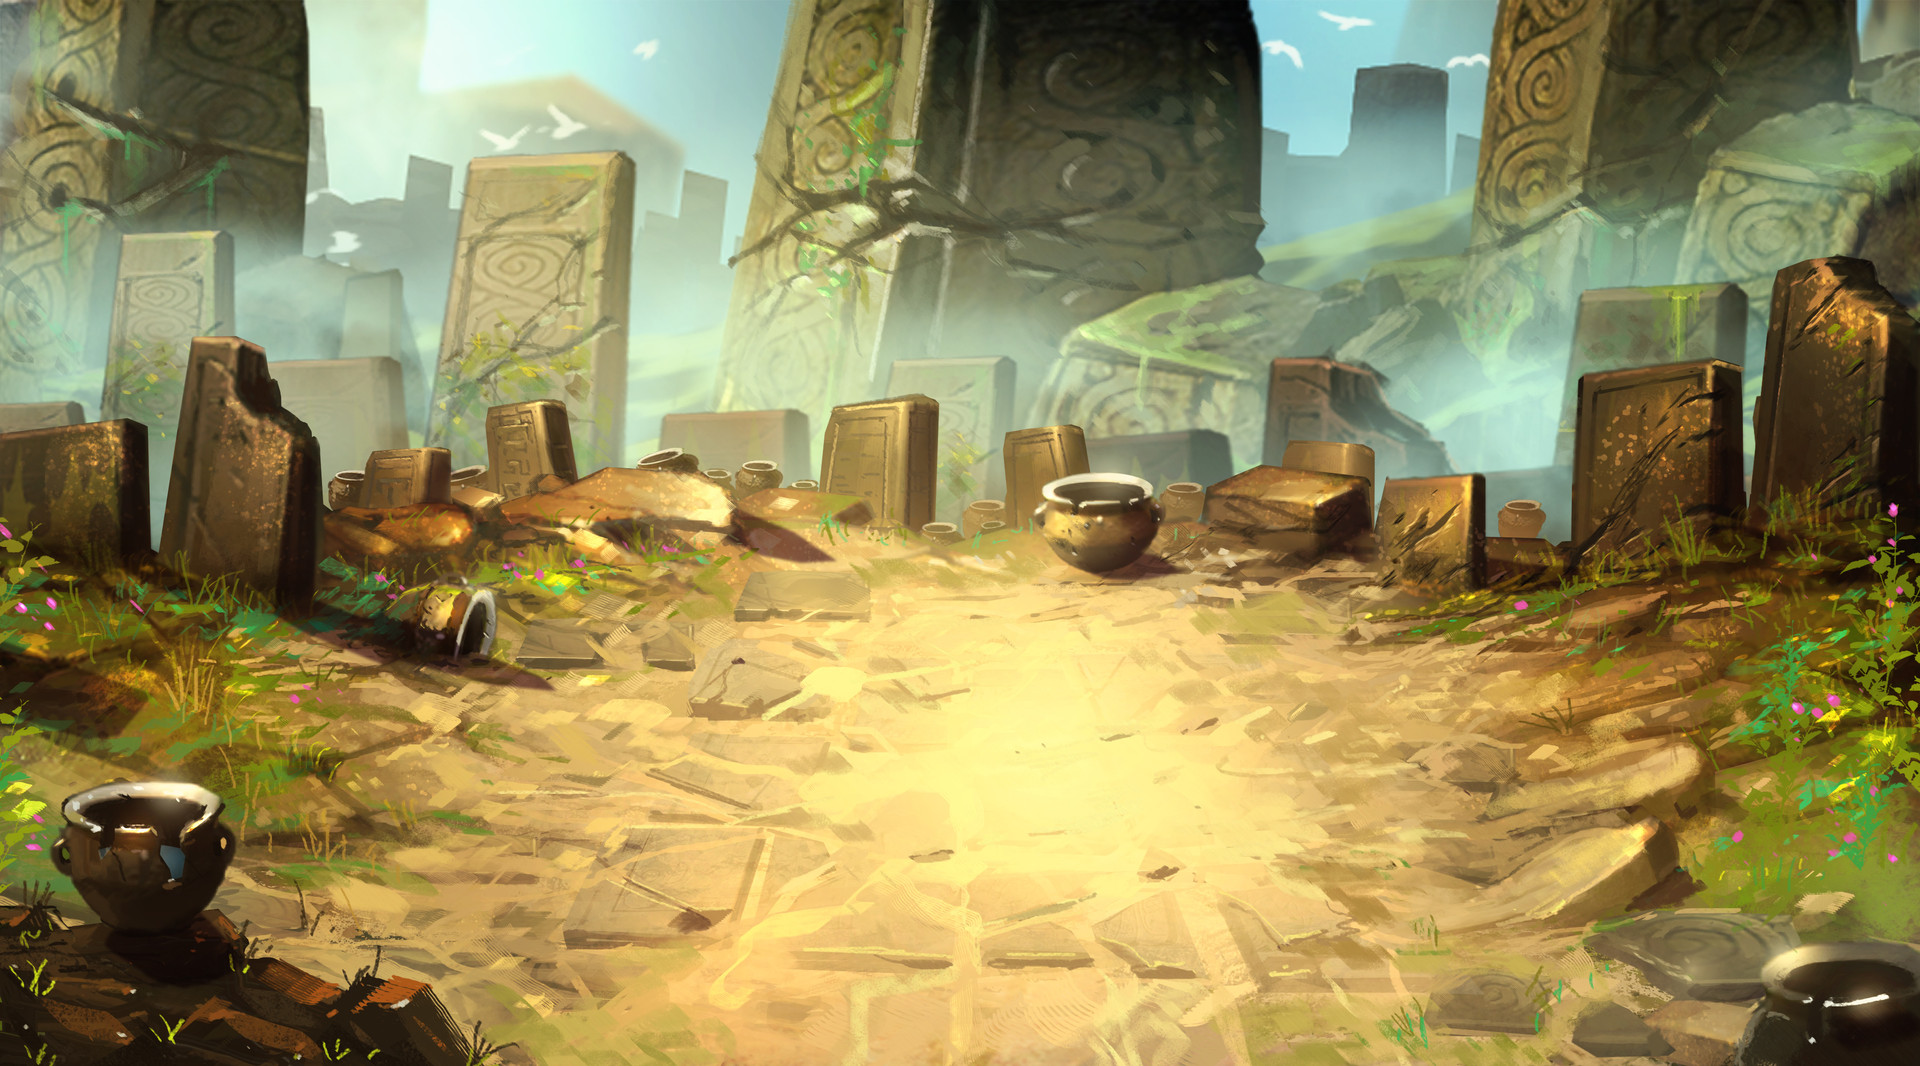 Game_bg_painting_01.jpg